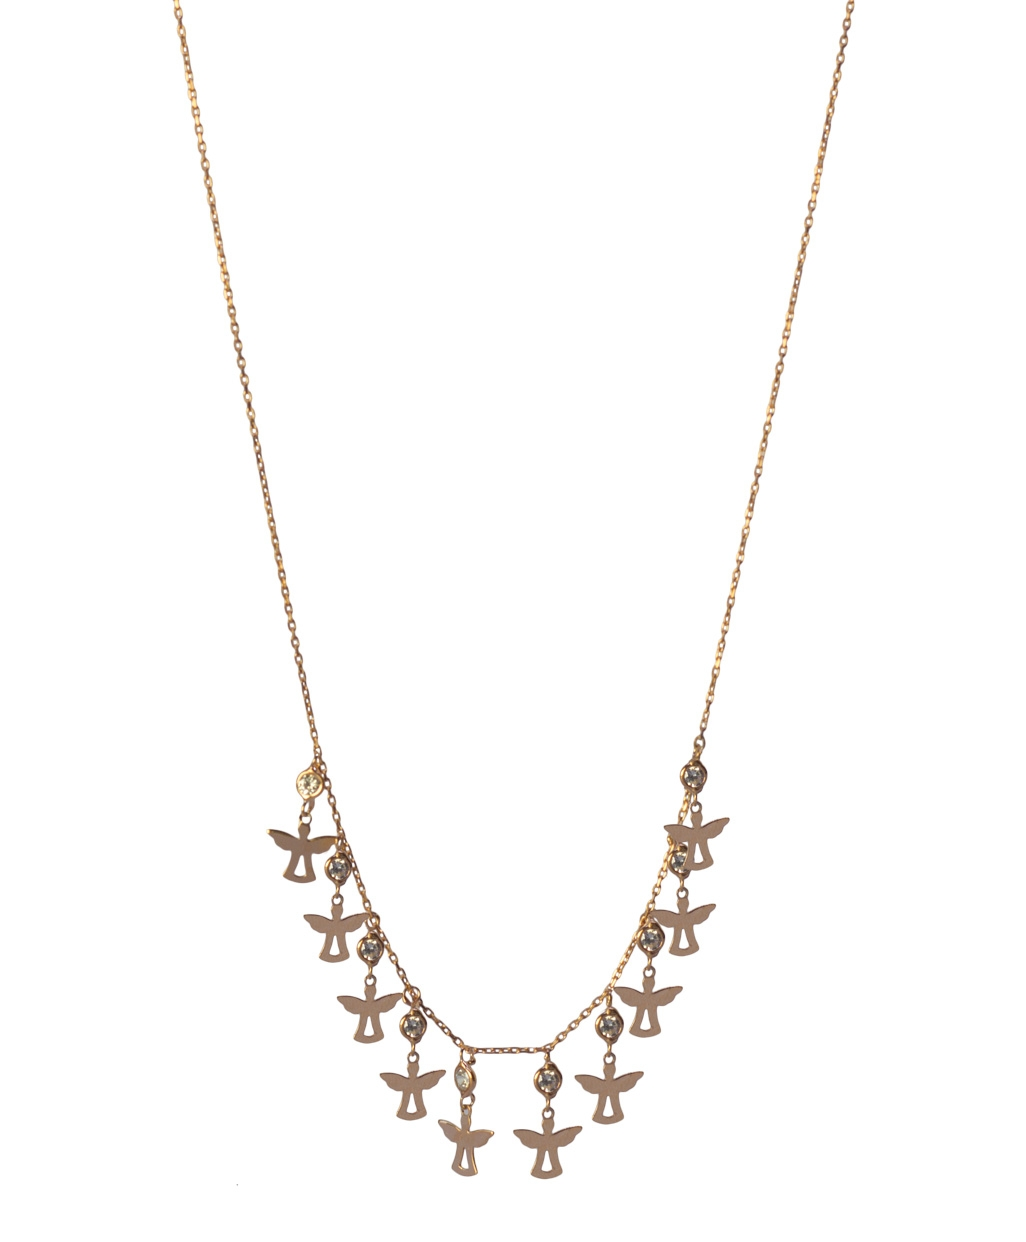 Gourmet Angel Silver Necklace